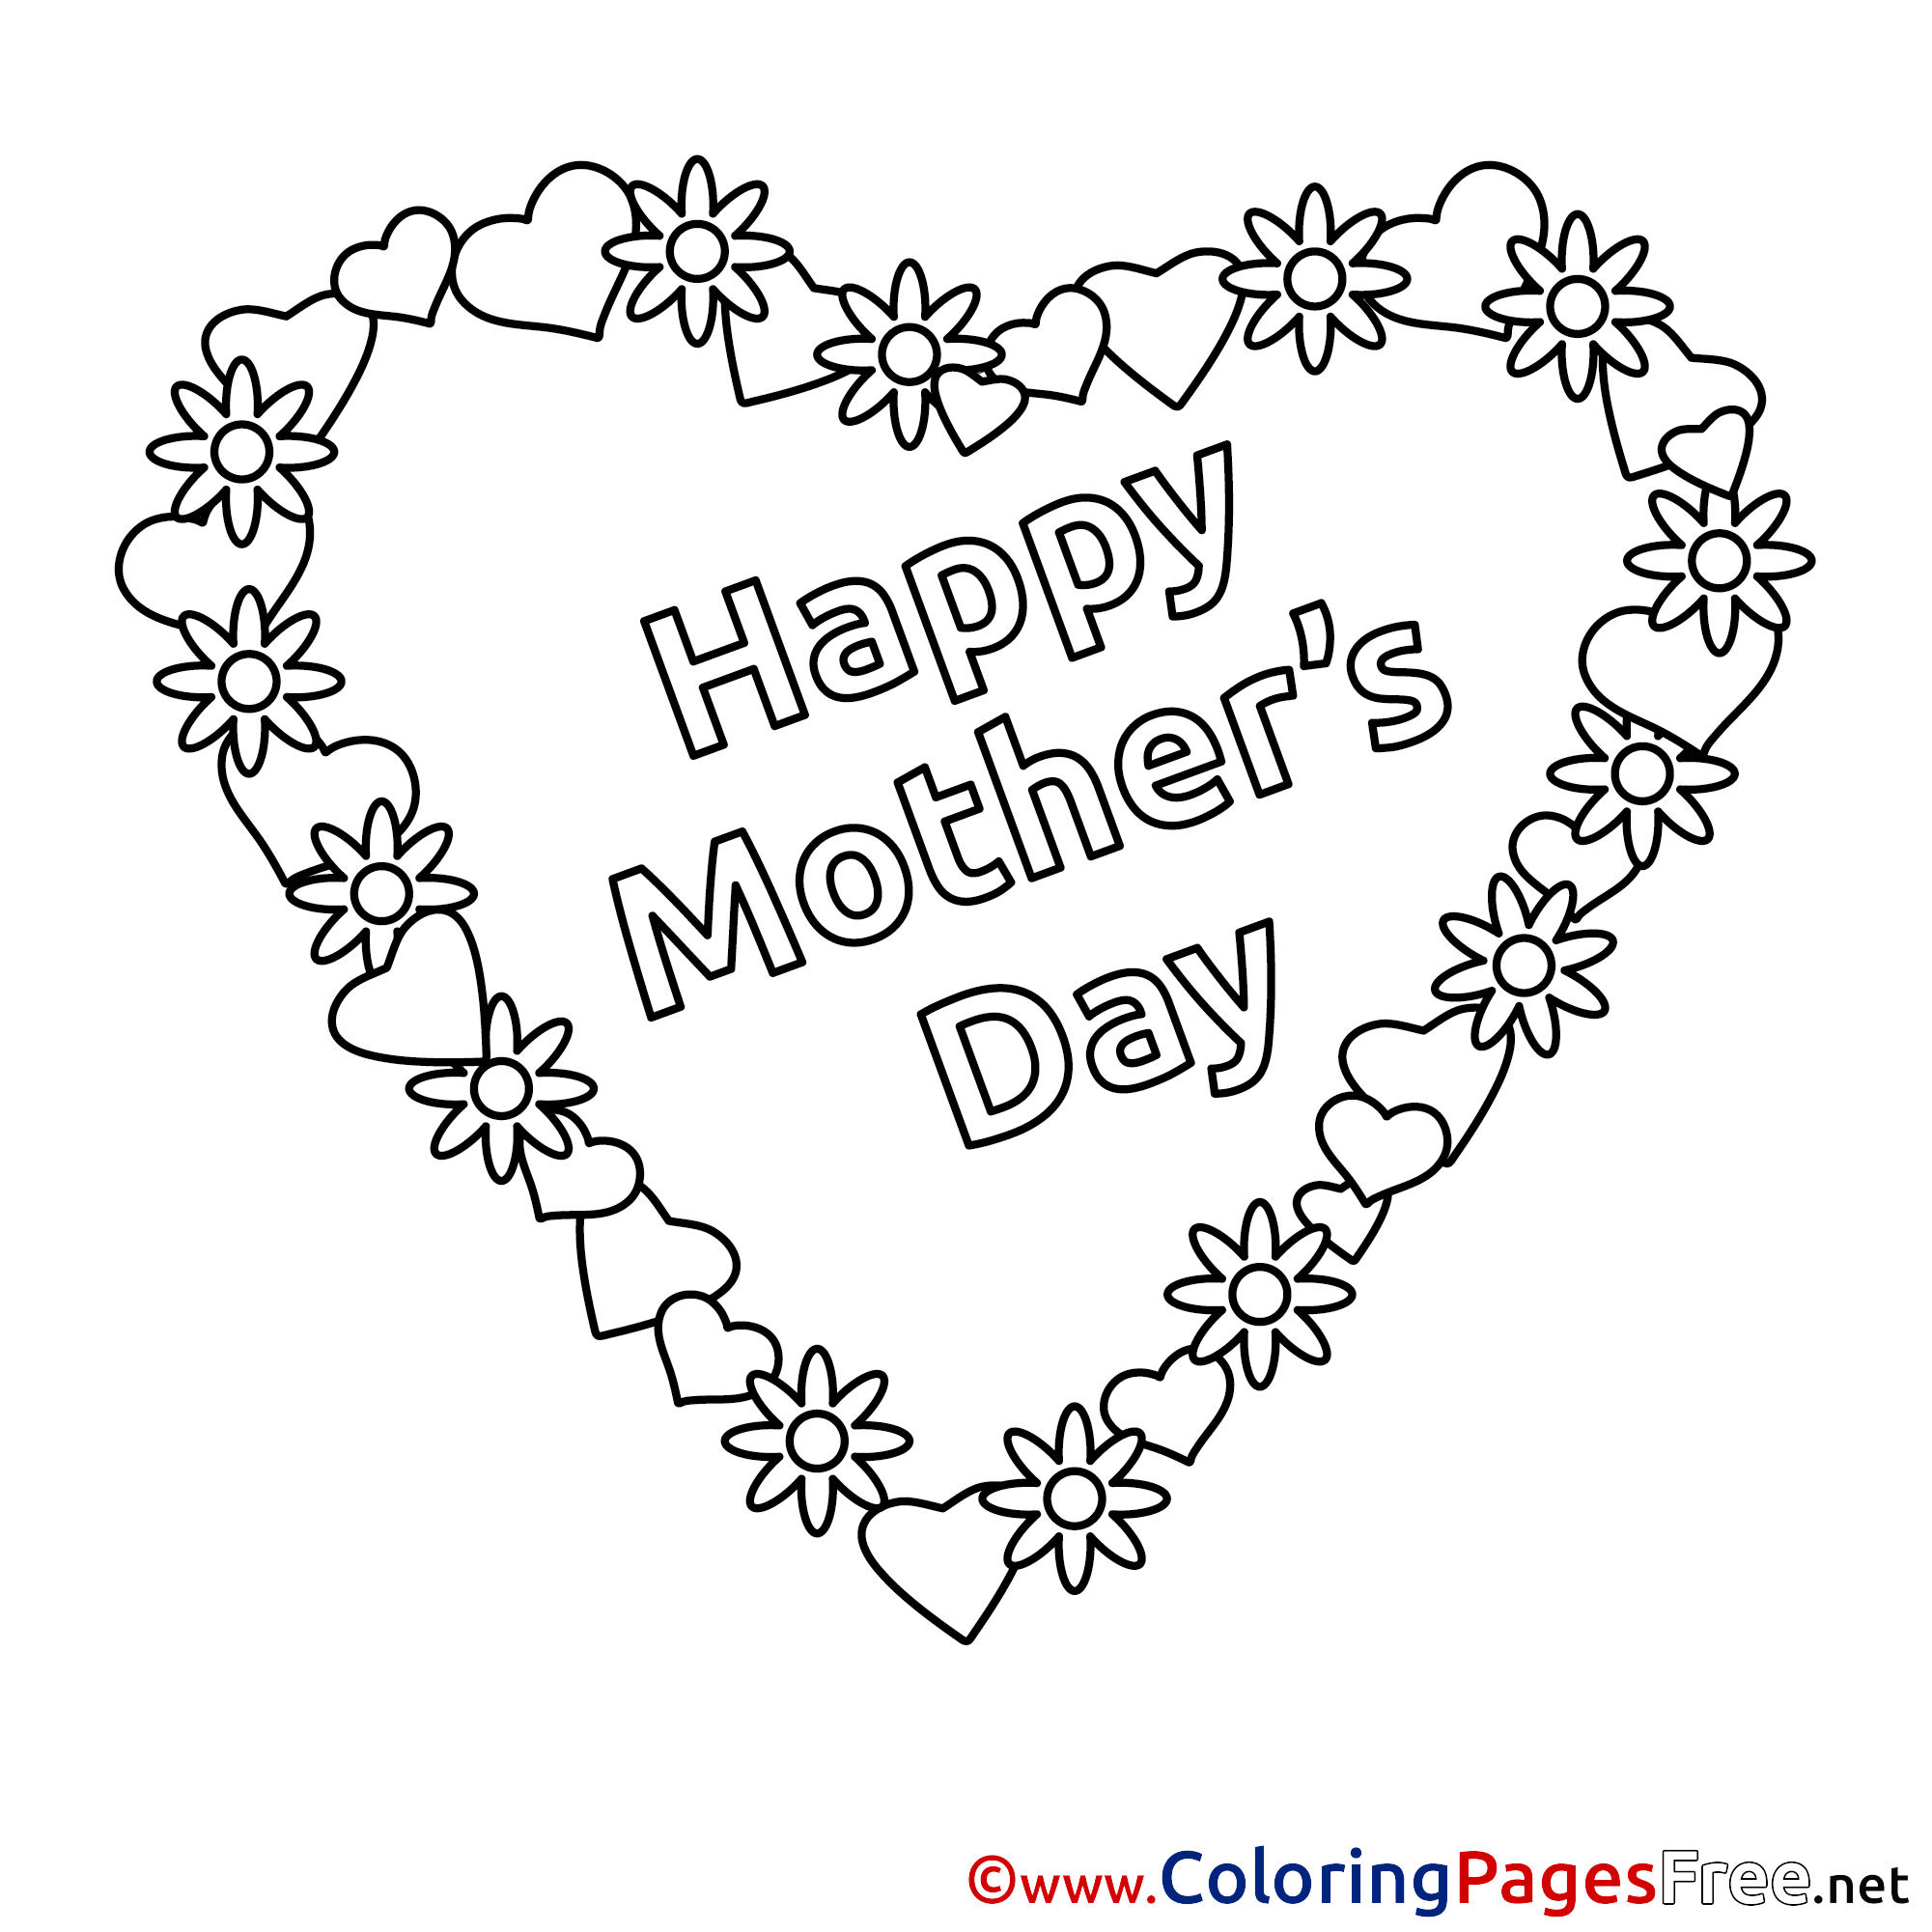 - Holiday Heart Flowers Mother's Day Free Coloring Pages